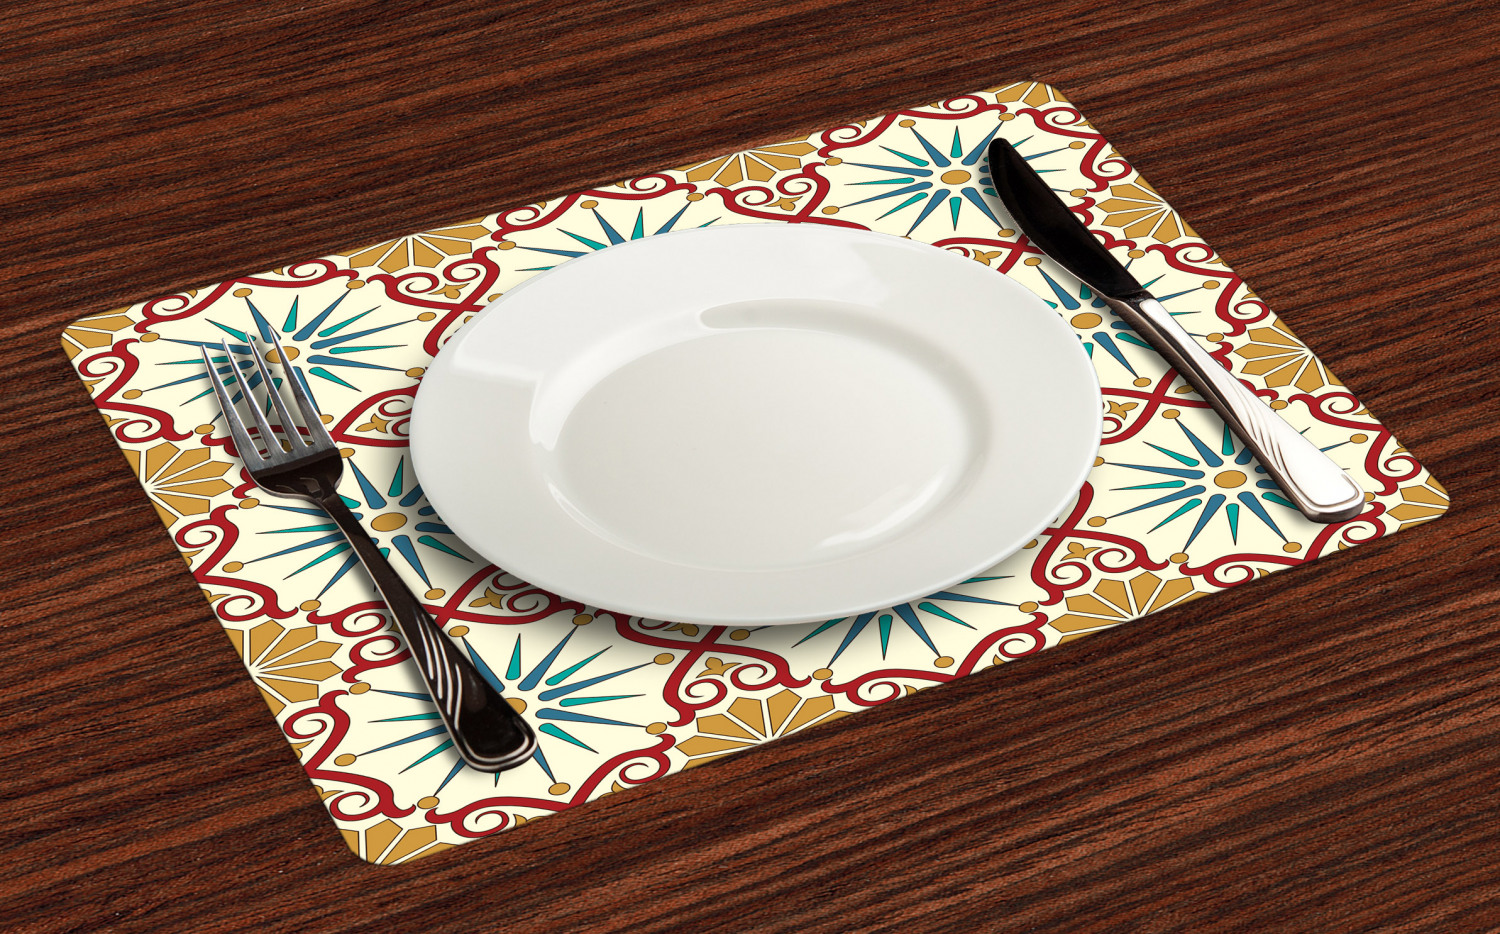 Moroccan Placemats Set Of 4 By Ambesonne Washable Fabric